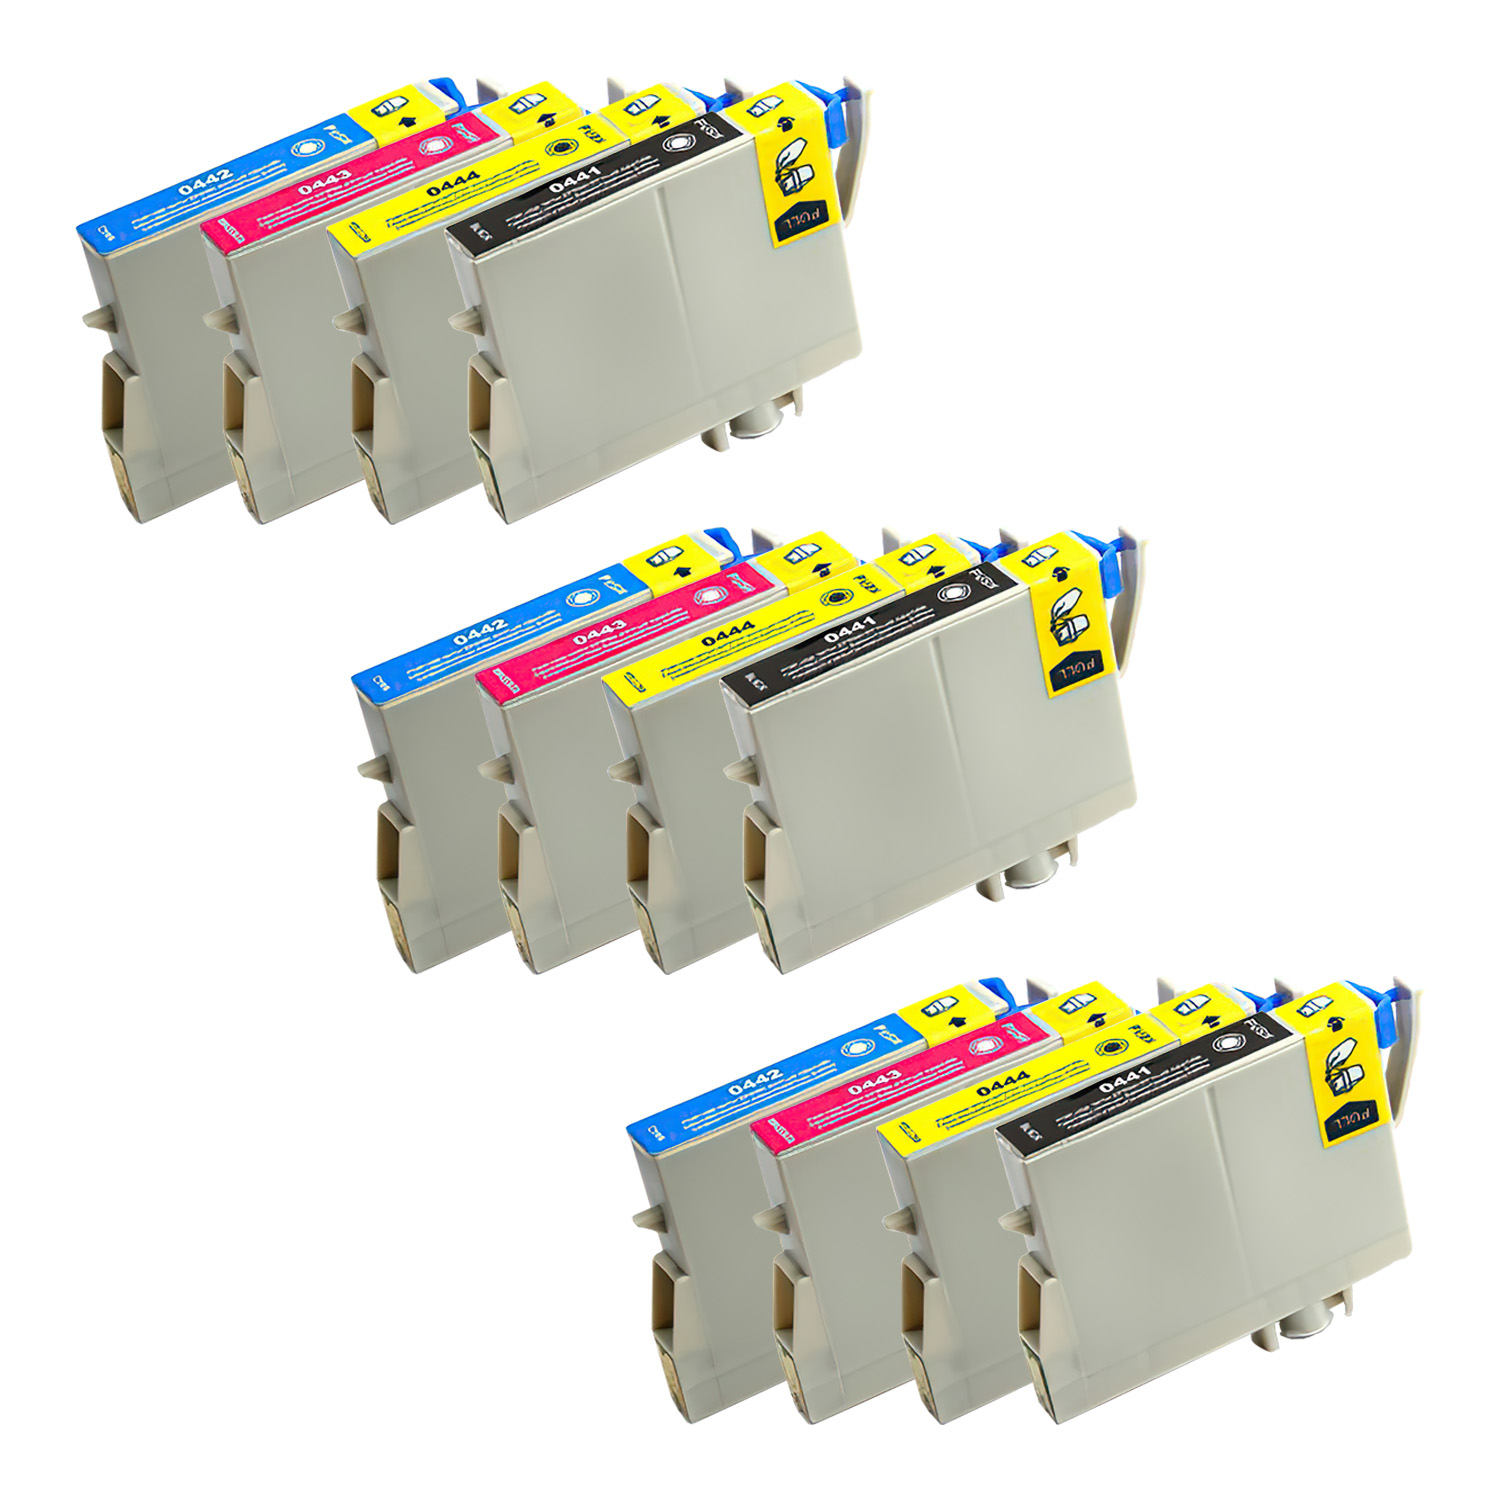 Remanufactured Epson 44 Inkjet Pack - 12 Cartridges